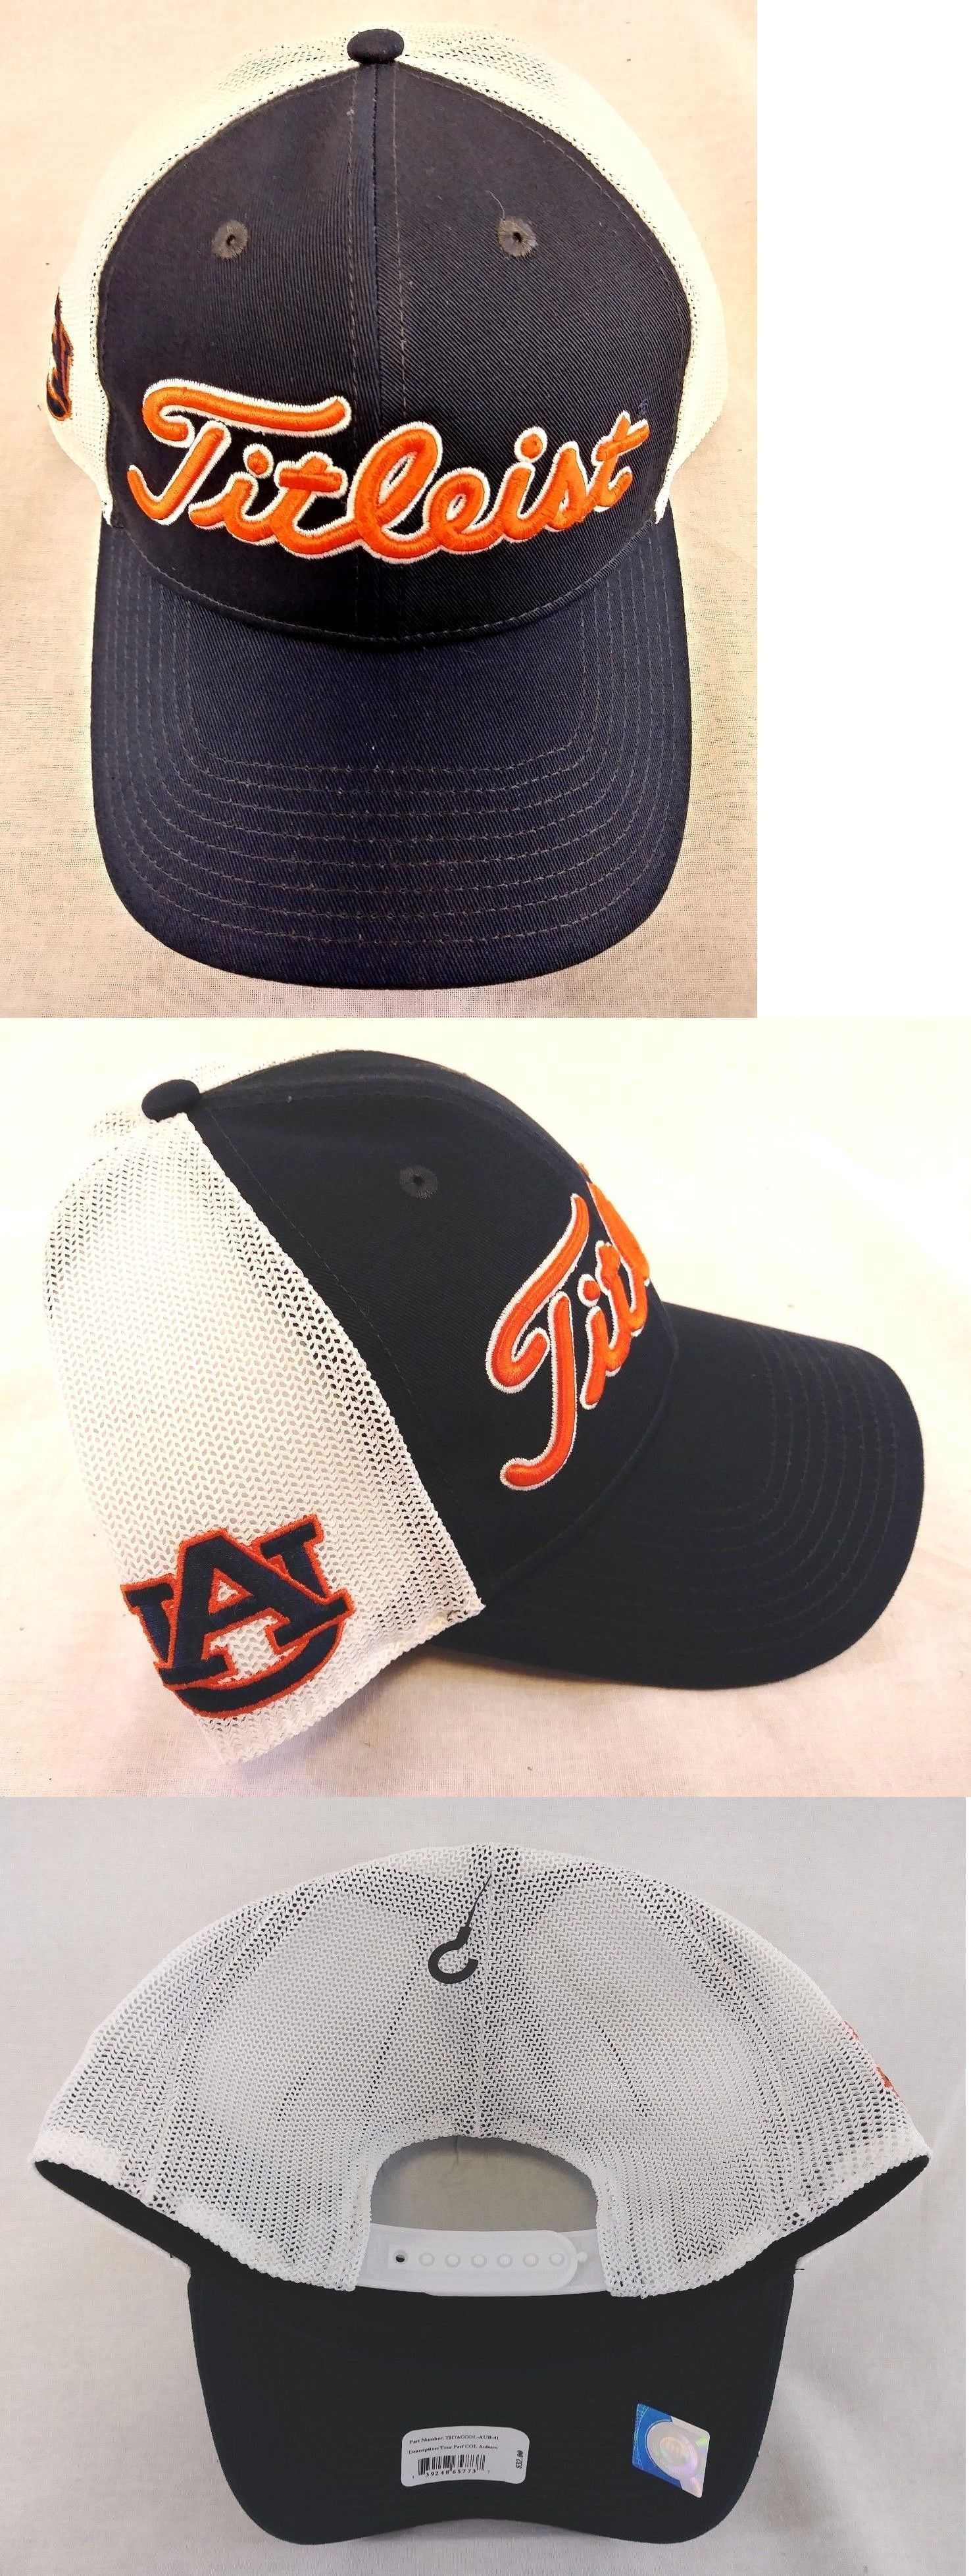 641182bc2de ... germany golf visors and hats 158937 titleist auburn university  collegiate twill mesh golf hat new adjustable